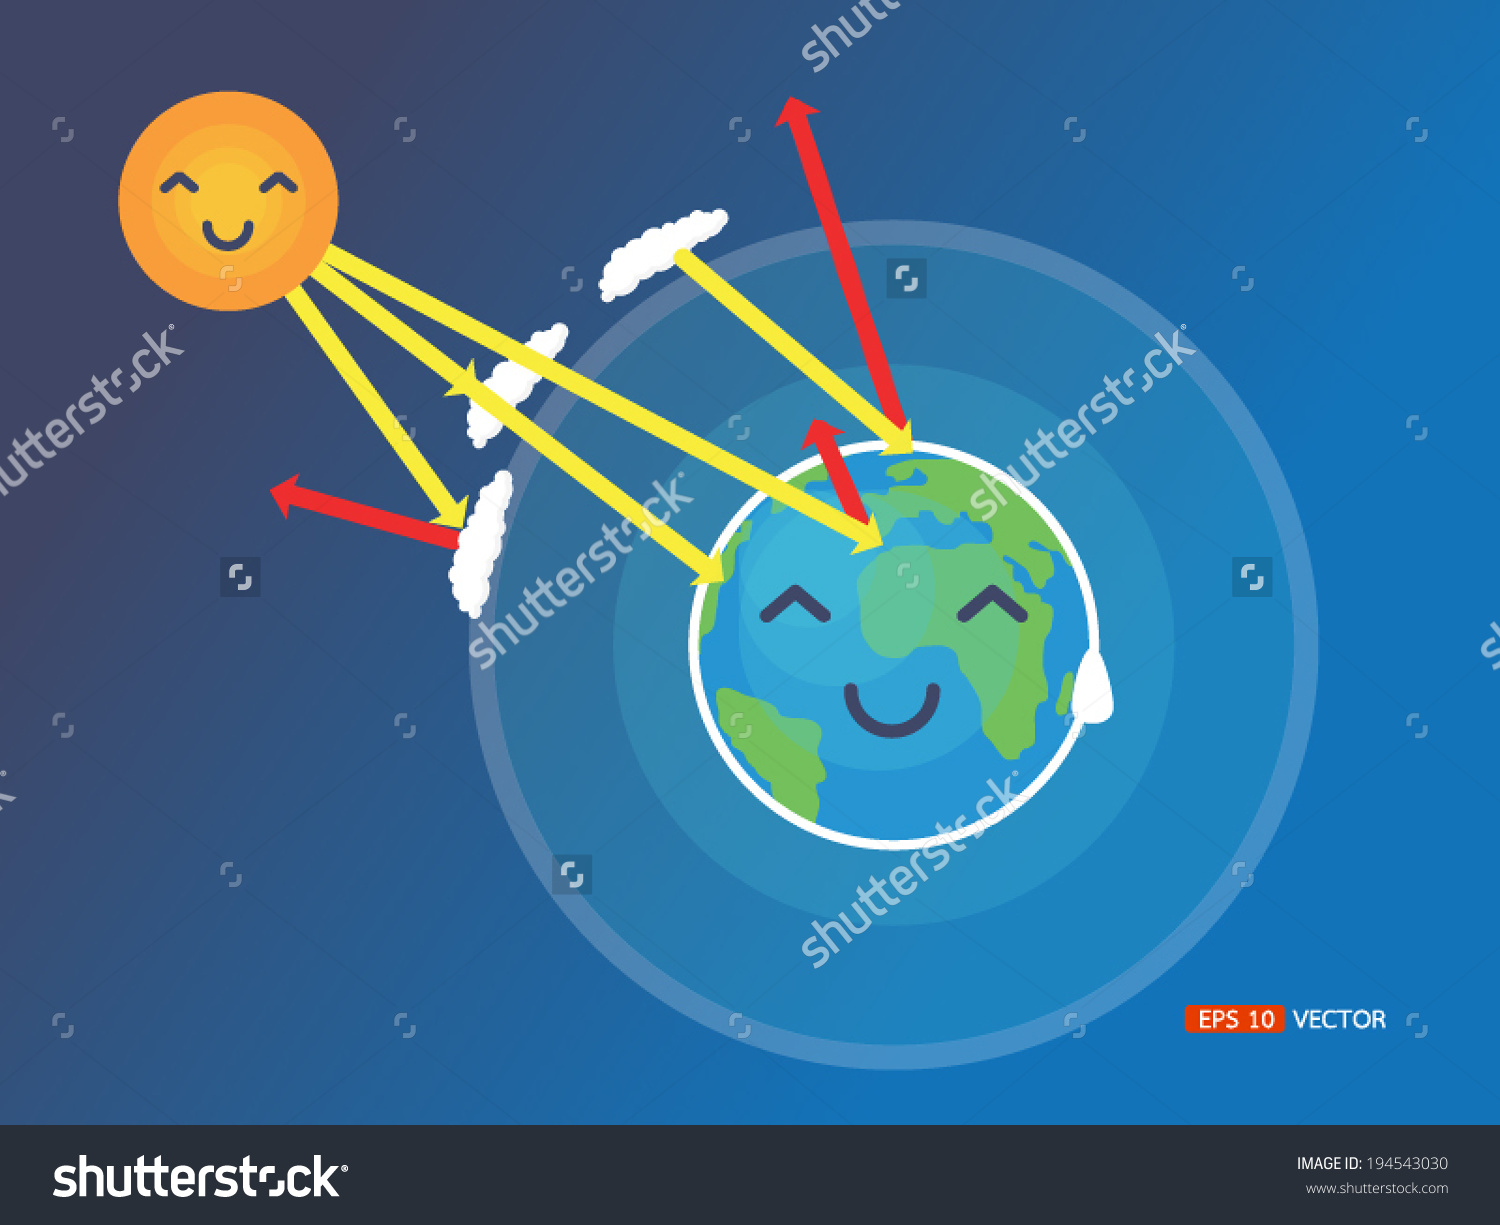 The earth's atmosphere clipart #5